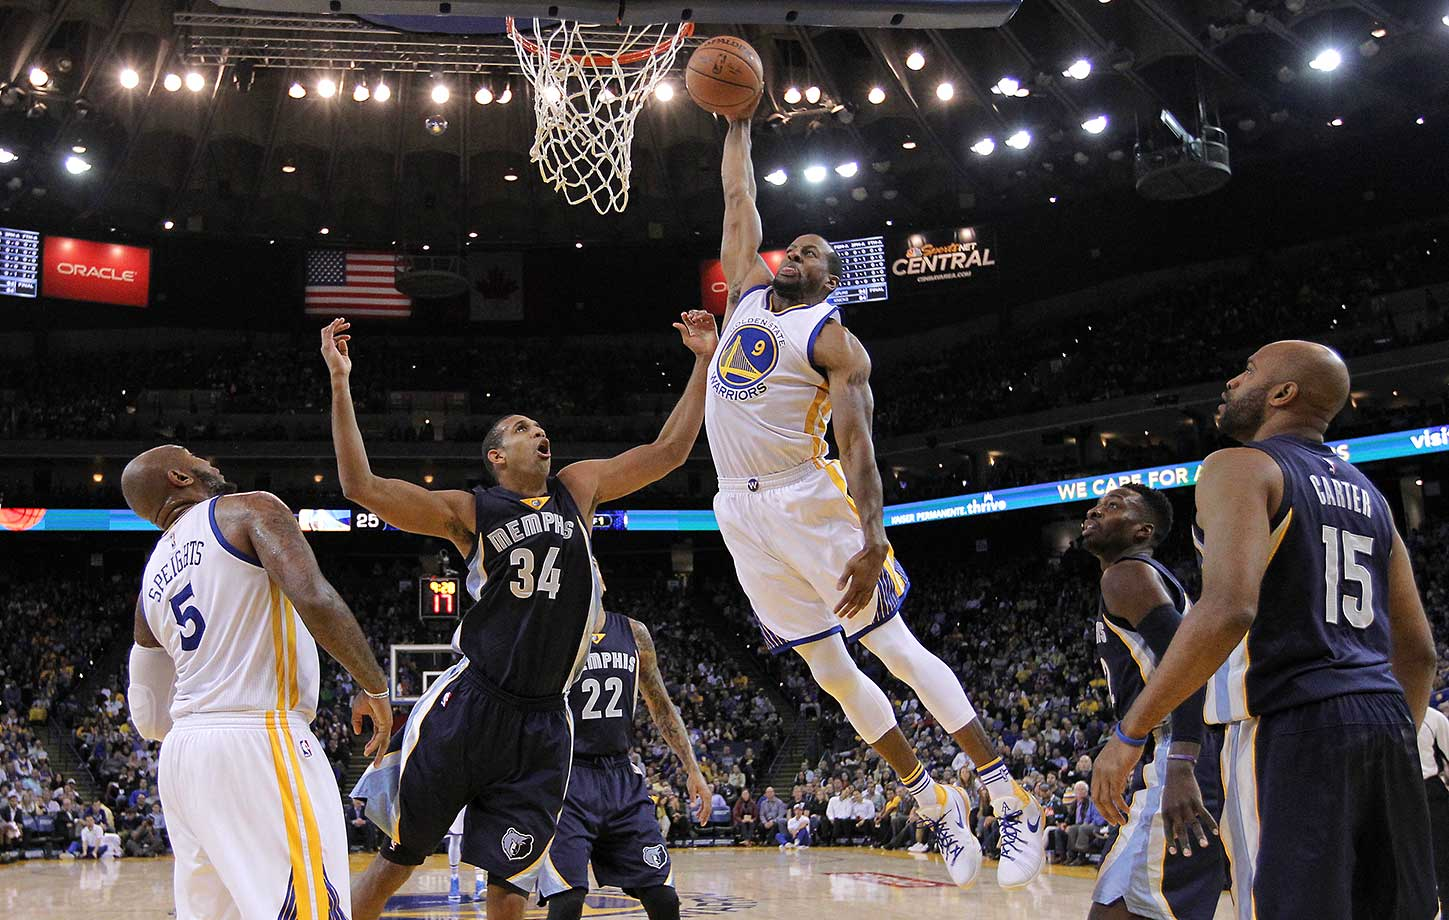 Andre Iguodala dunks over Brandan Wright in a game in which the Warriors won by 50 points, the worst loss in Memphis franchise history.